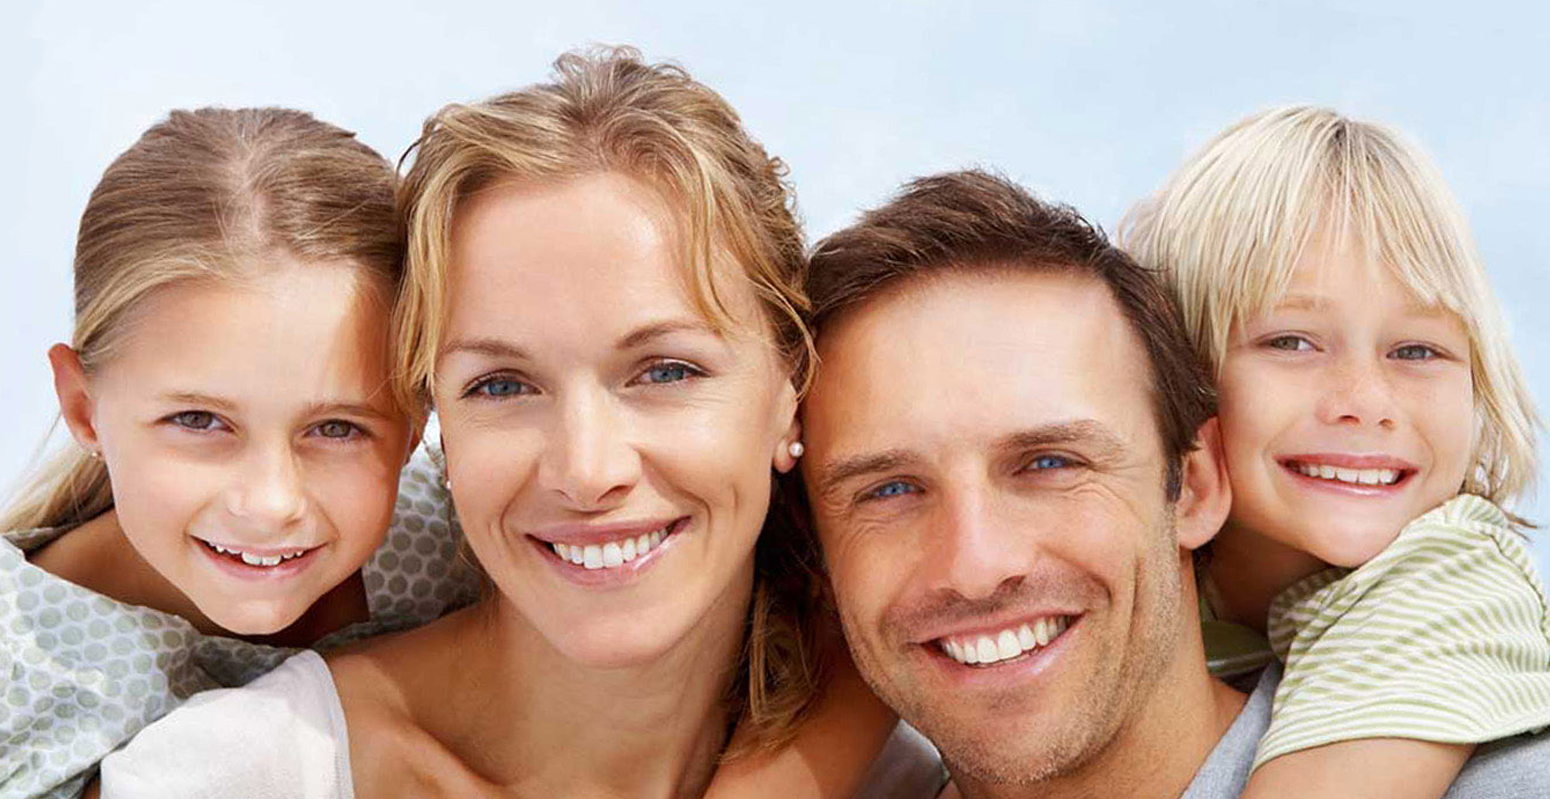 Smile Dentistry: The Painless and Outstanding Method to Get a Beautiful Smile